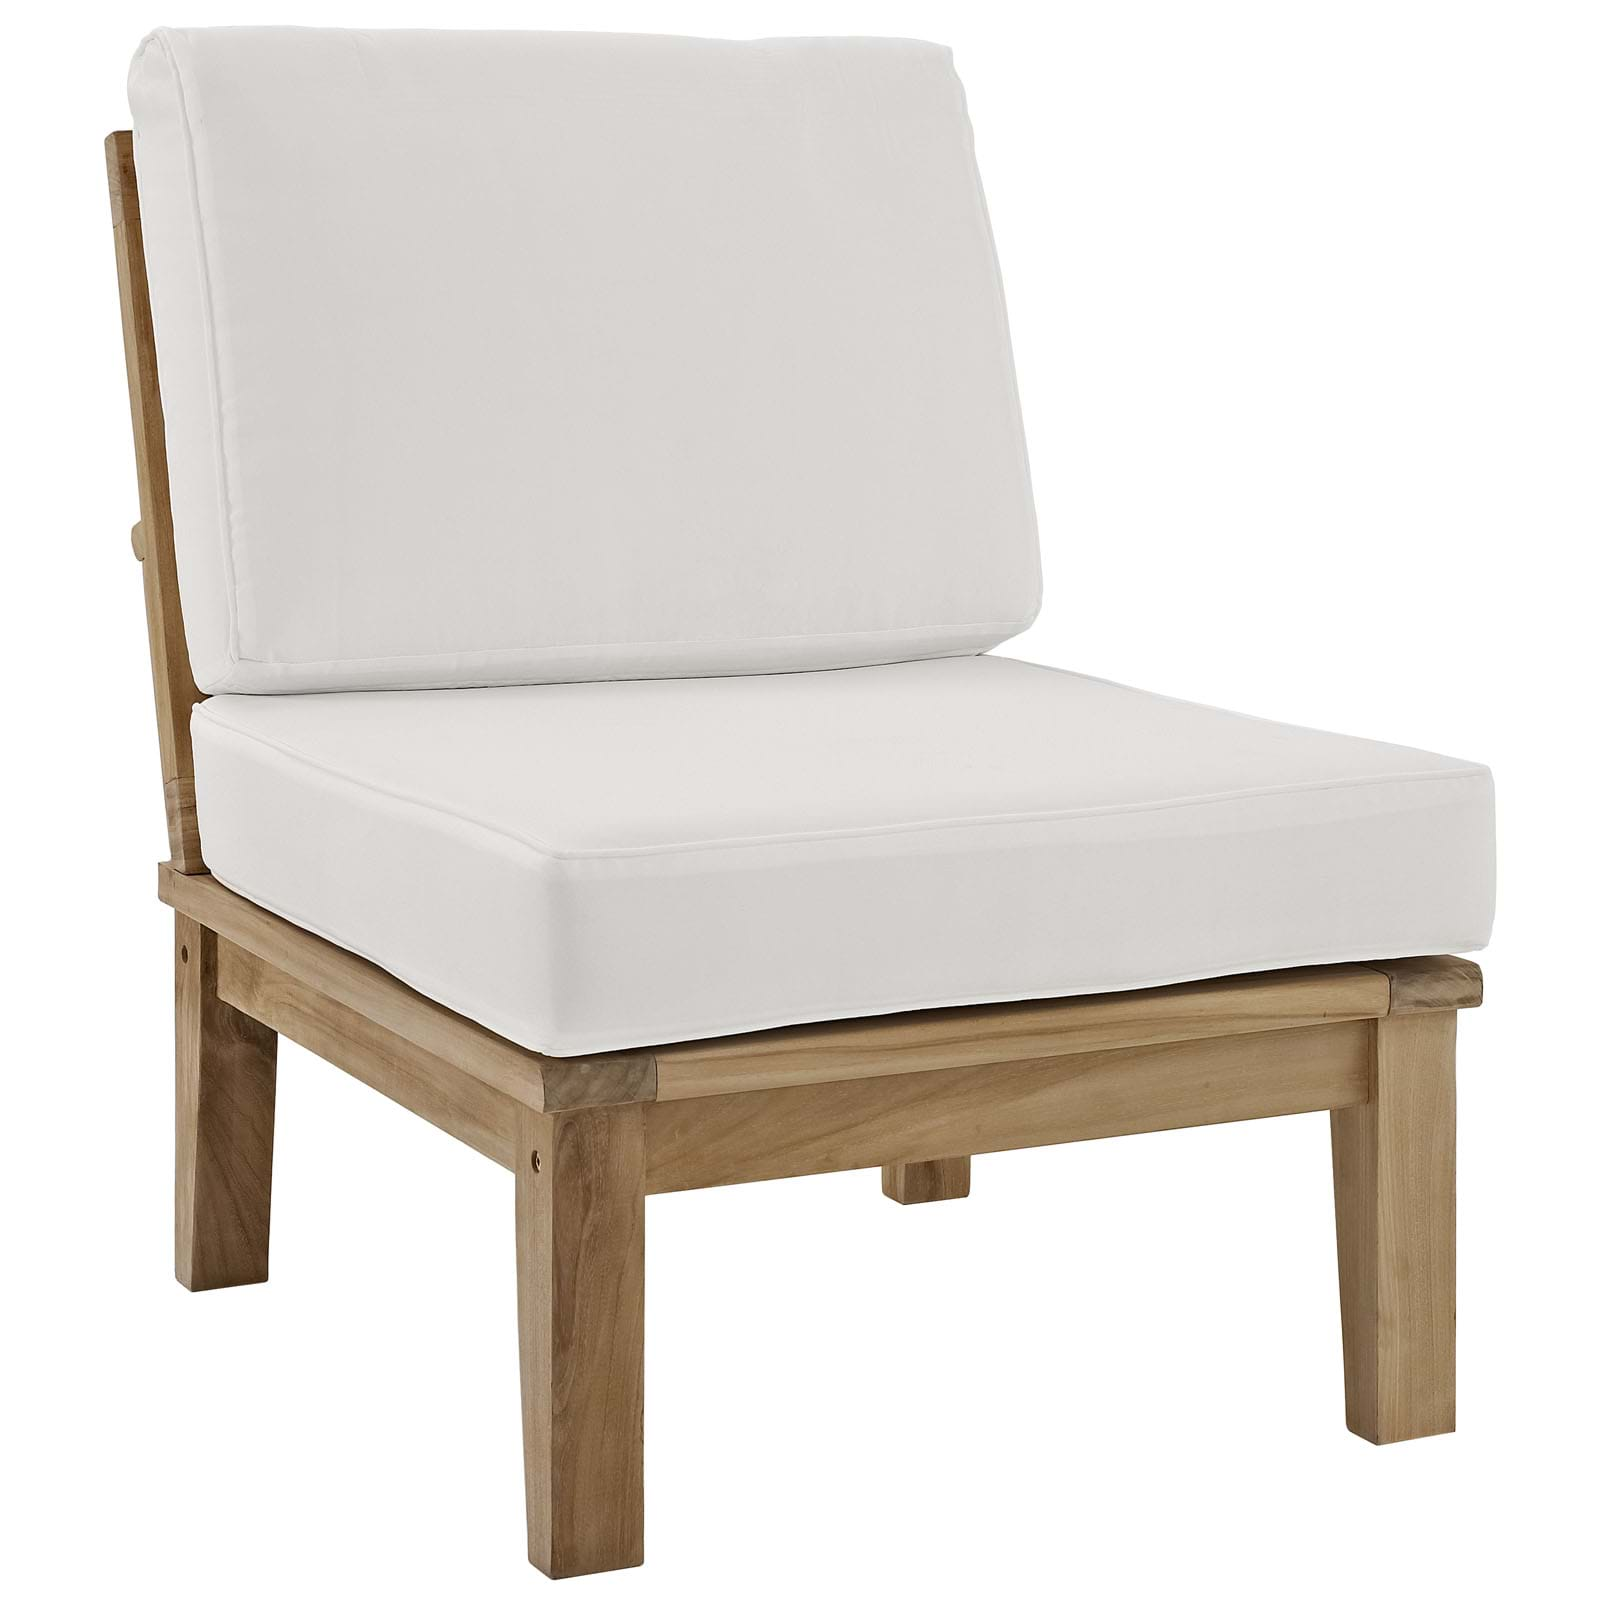 Marina Armless Outdoor Patio Teak Sofa